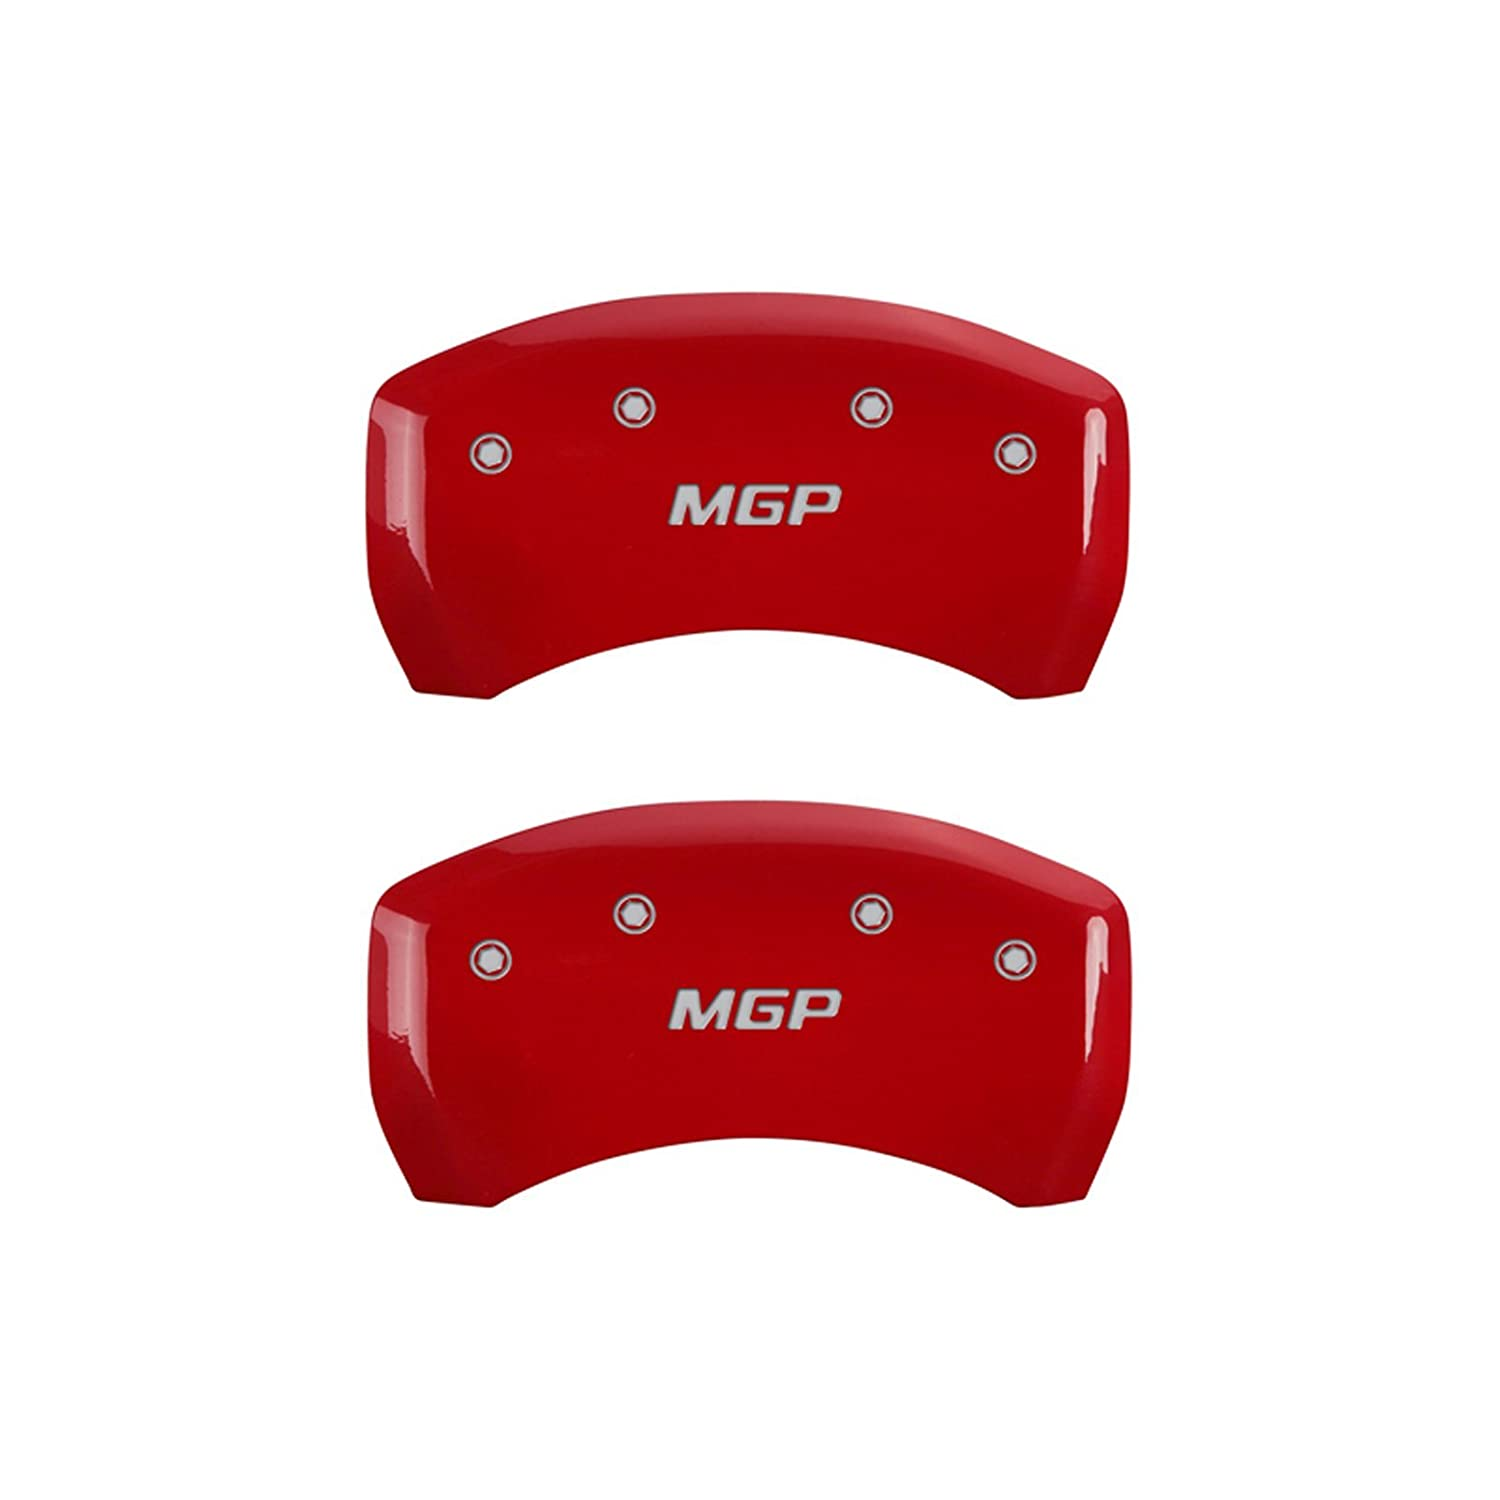 MGP Caliper Covers 22210SMGPRD MGP Engraved Caliper Cover with Red Powder Coat Finish and Silver Characters, Set of 4